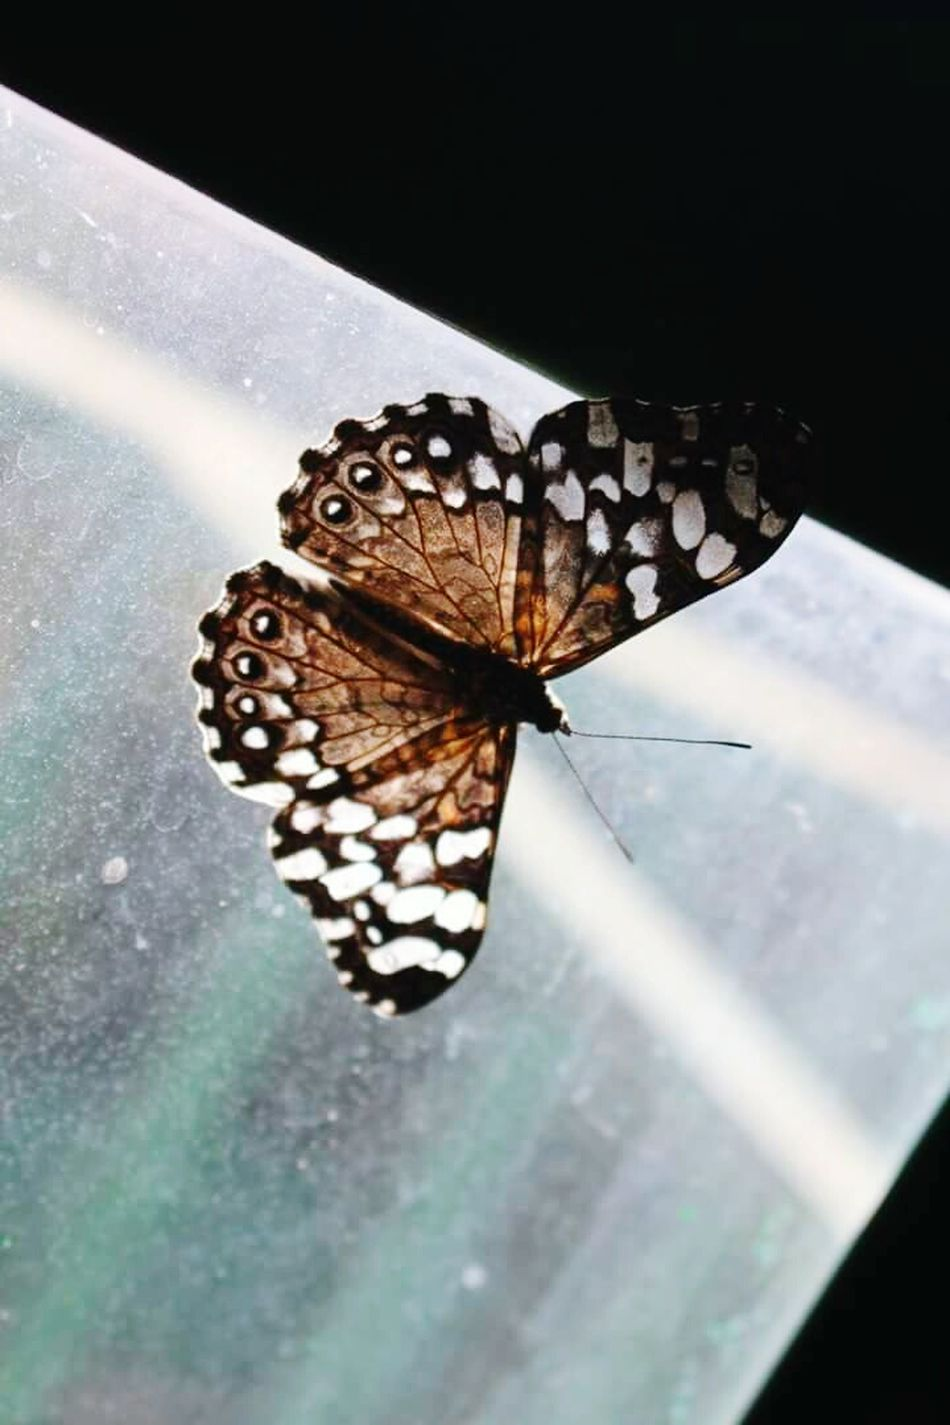 One Animal Butterfly - Insect Insect Animal Themes Animal Wildlife Animals In The Wild No People Close-up Animal Markings Day Nature Outdoors Perching Baterfly Garden Tranquility Reflection Fragility Baterfly Freshness Beauty In Nature Nature Butterfly